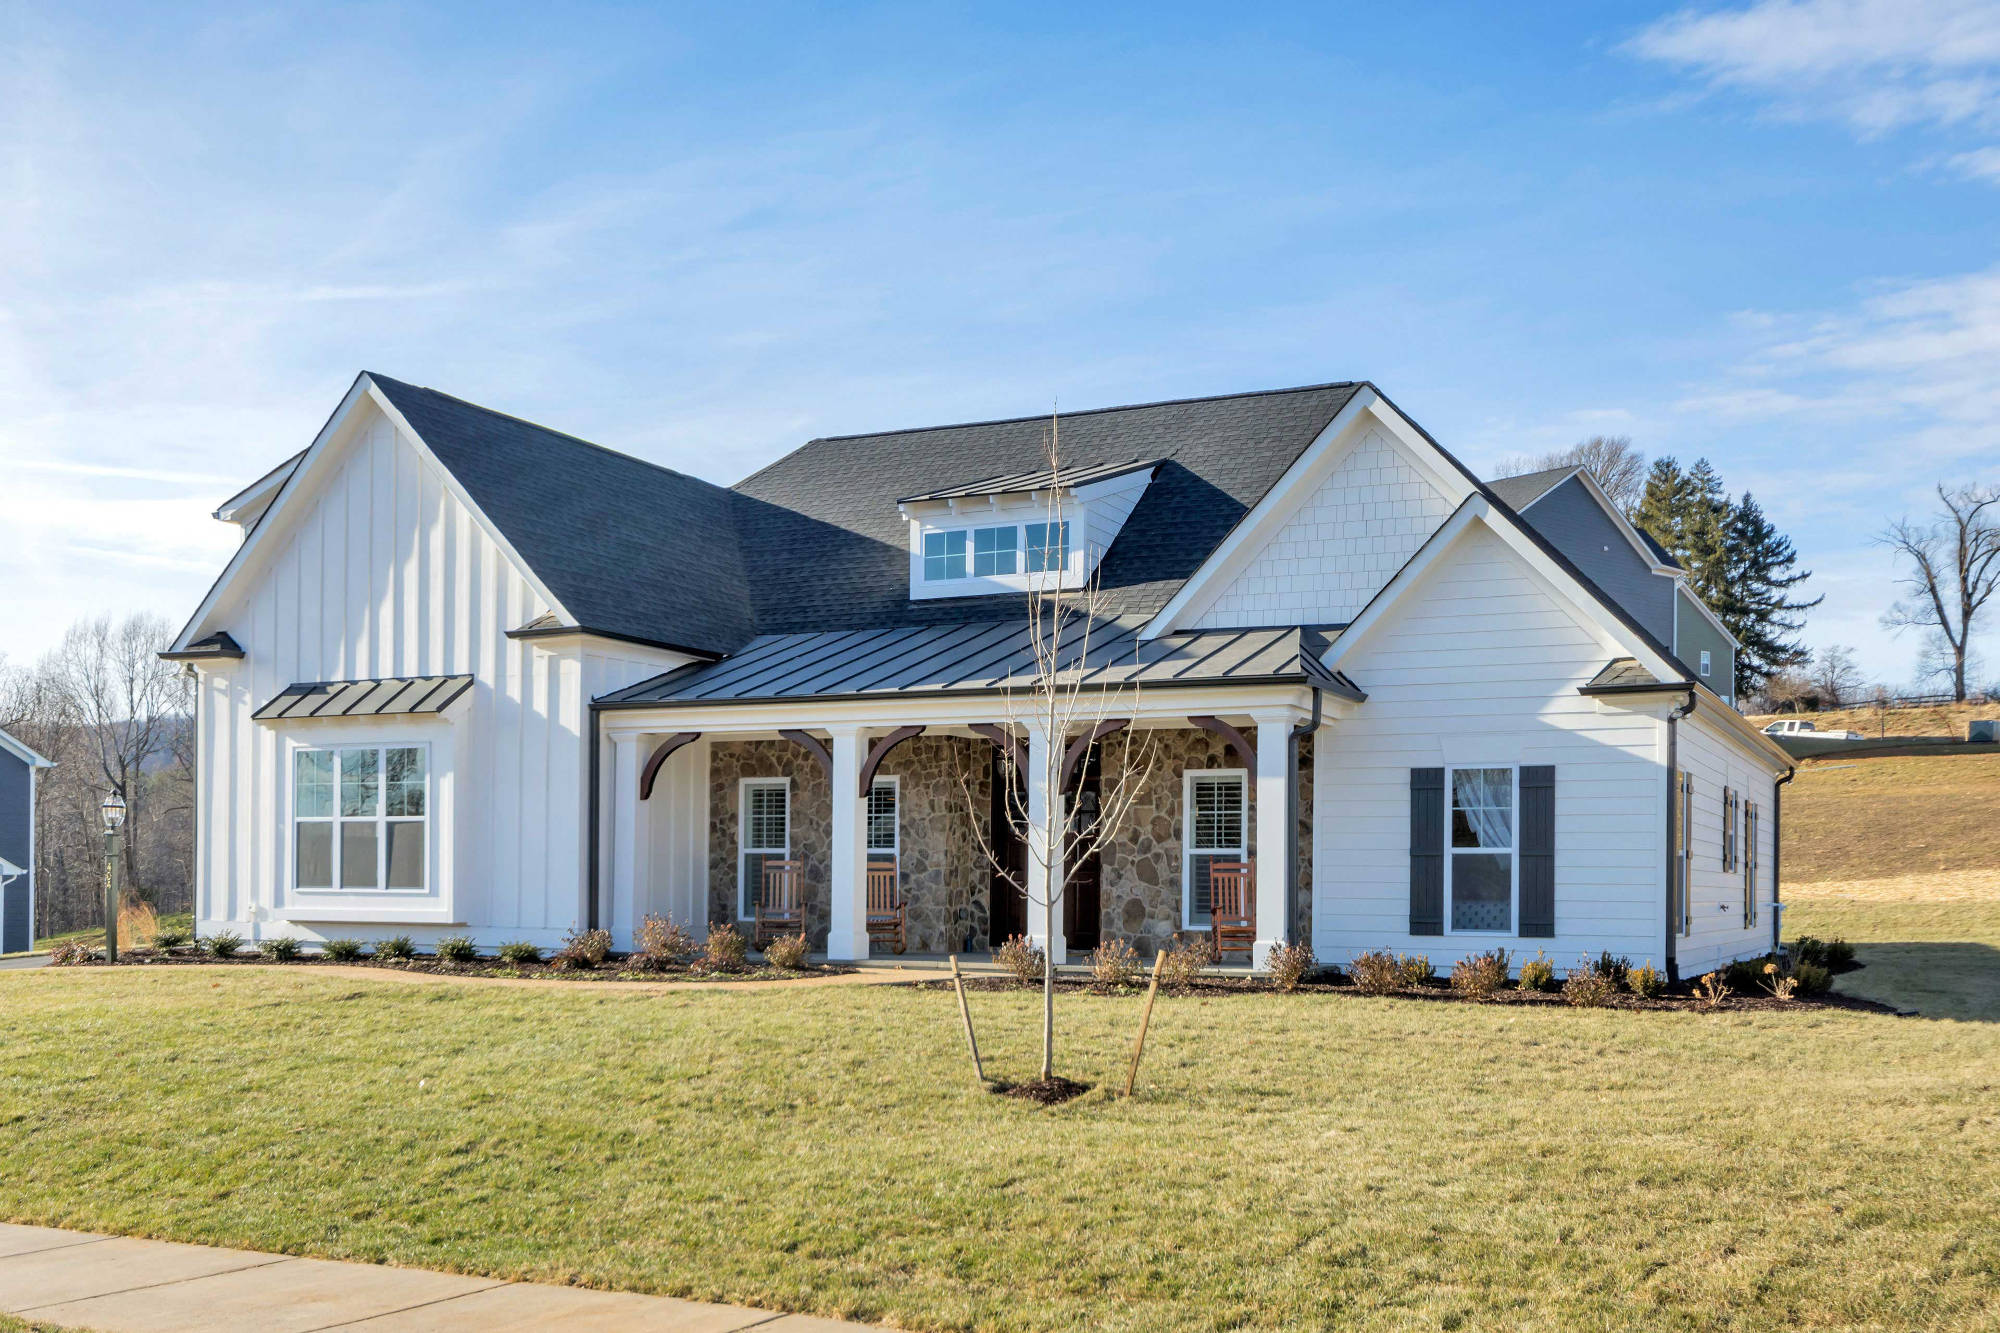 This Award Winning English Country Style Home Is One Of Craig Builders Most  Versatile And Elegant Designs. The Newport Showcases A Floor Plan Adaptable  To ...